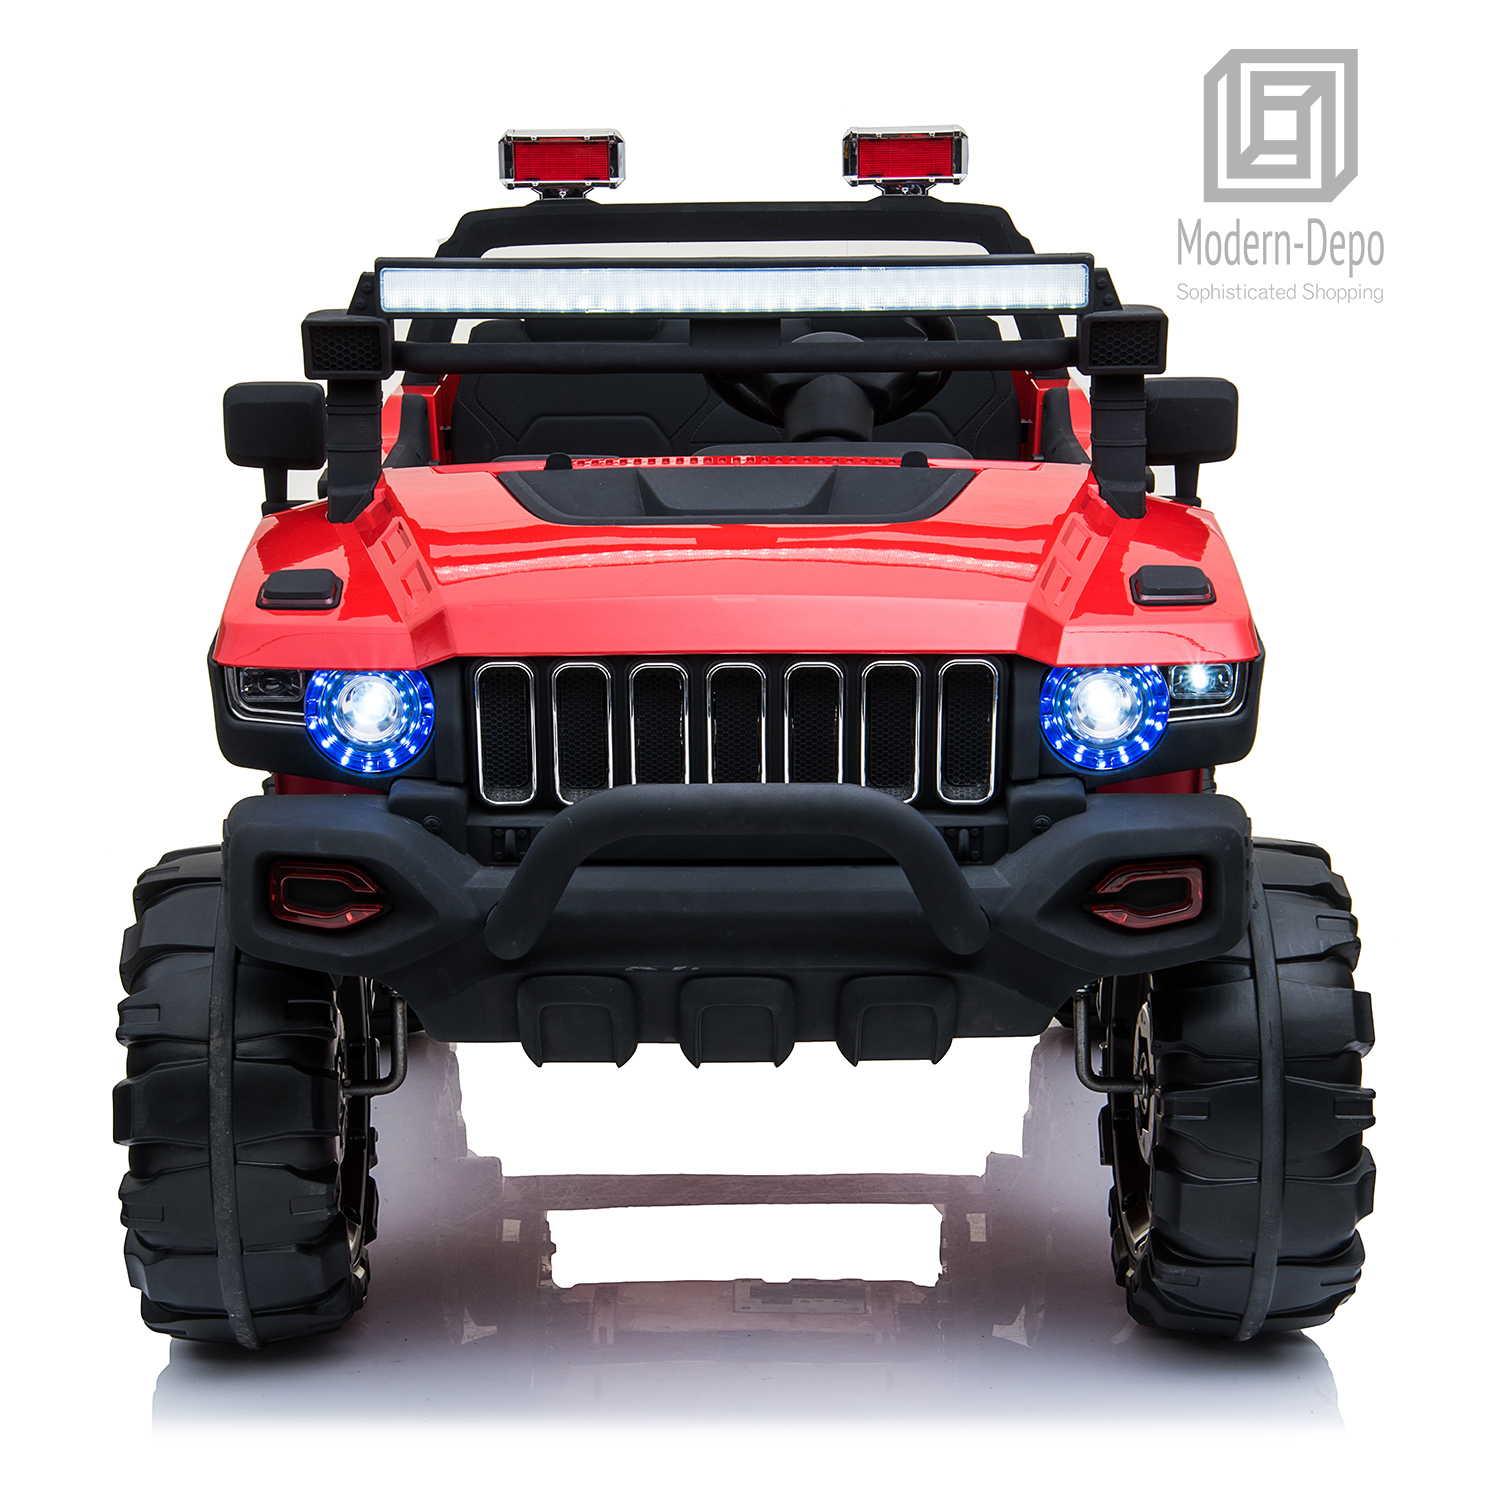 2-Seaters-4-4-Off-Road-Electric-12V-Ride-on-Car-with-Remote-Control miniature 26